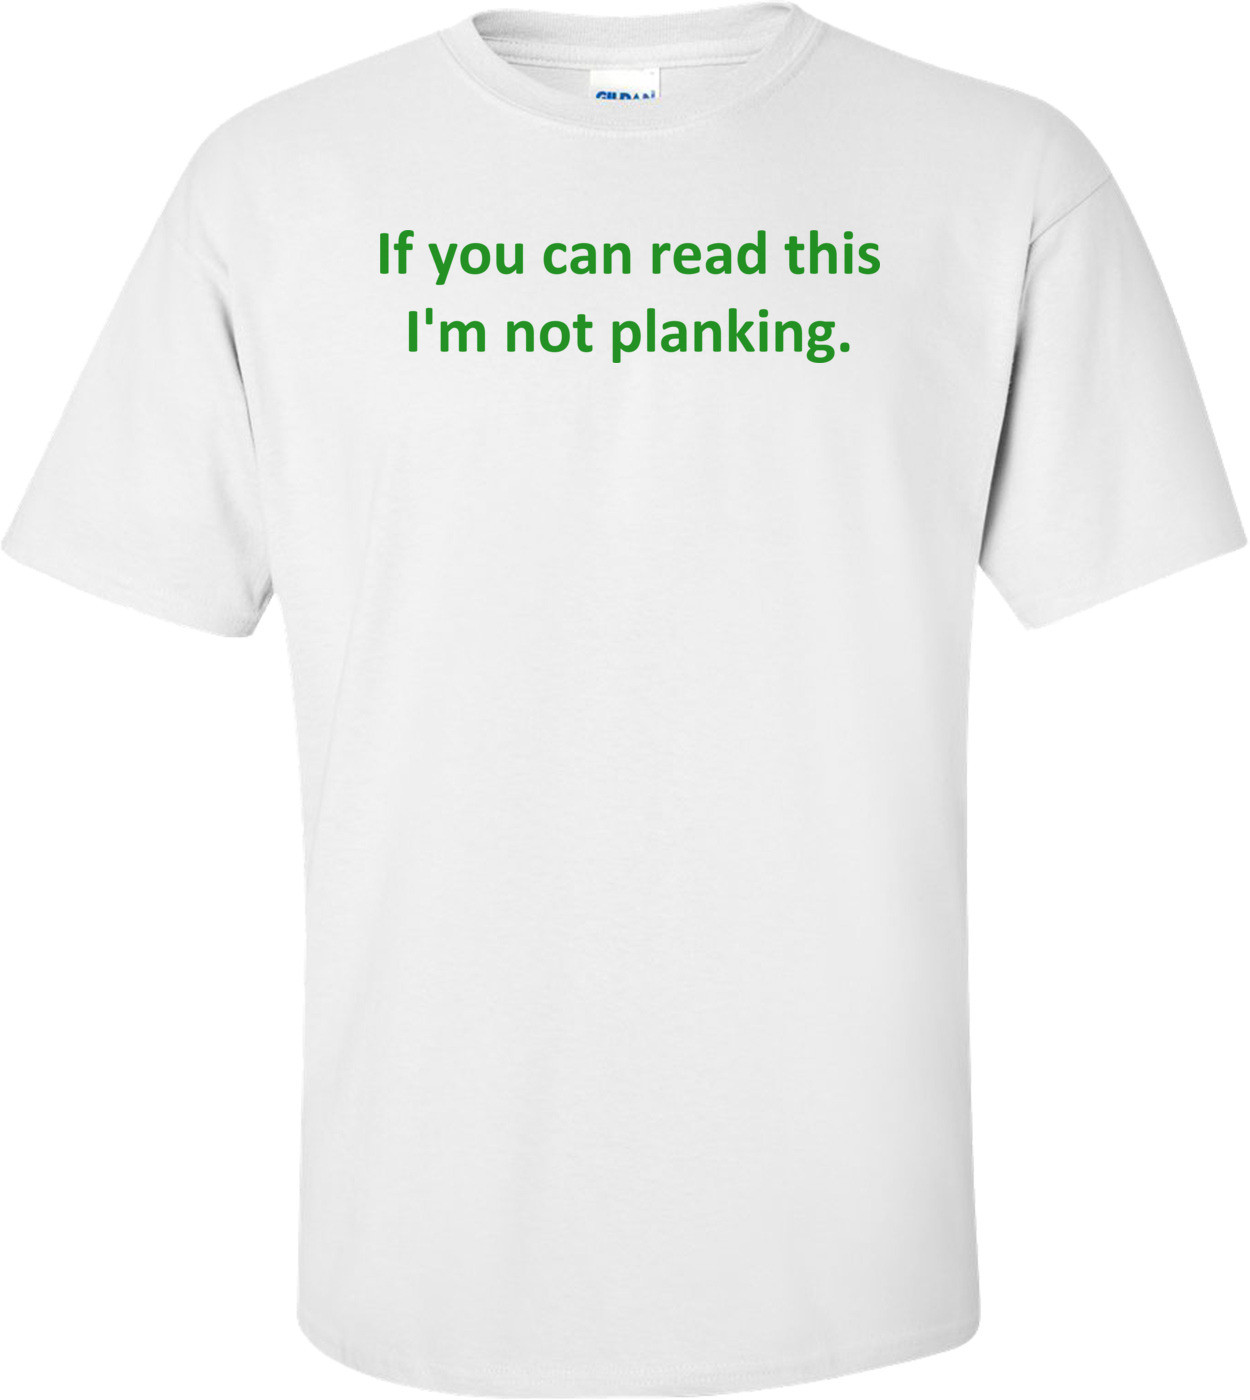 If you can read this I'm not planking. Shirt